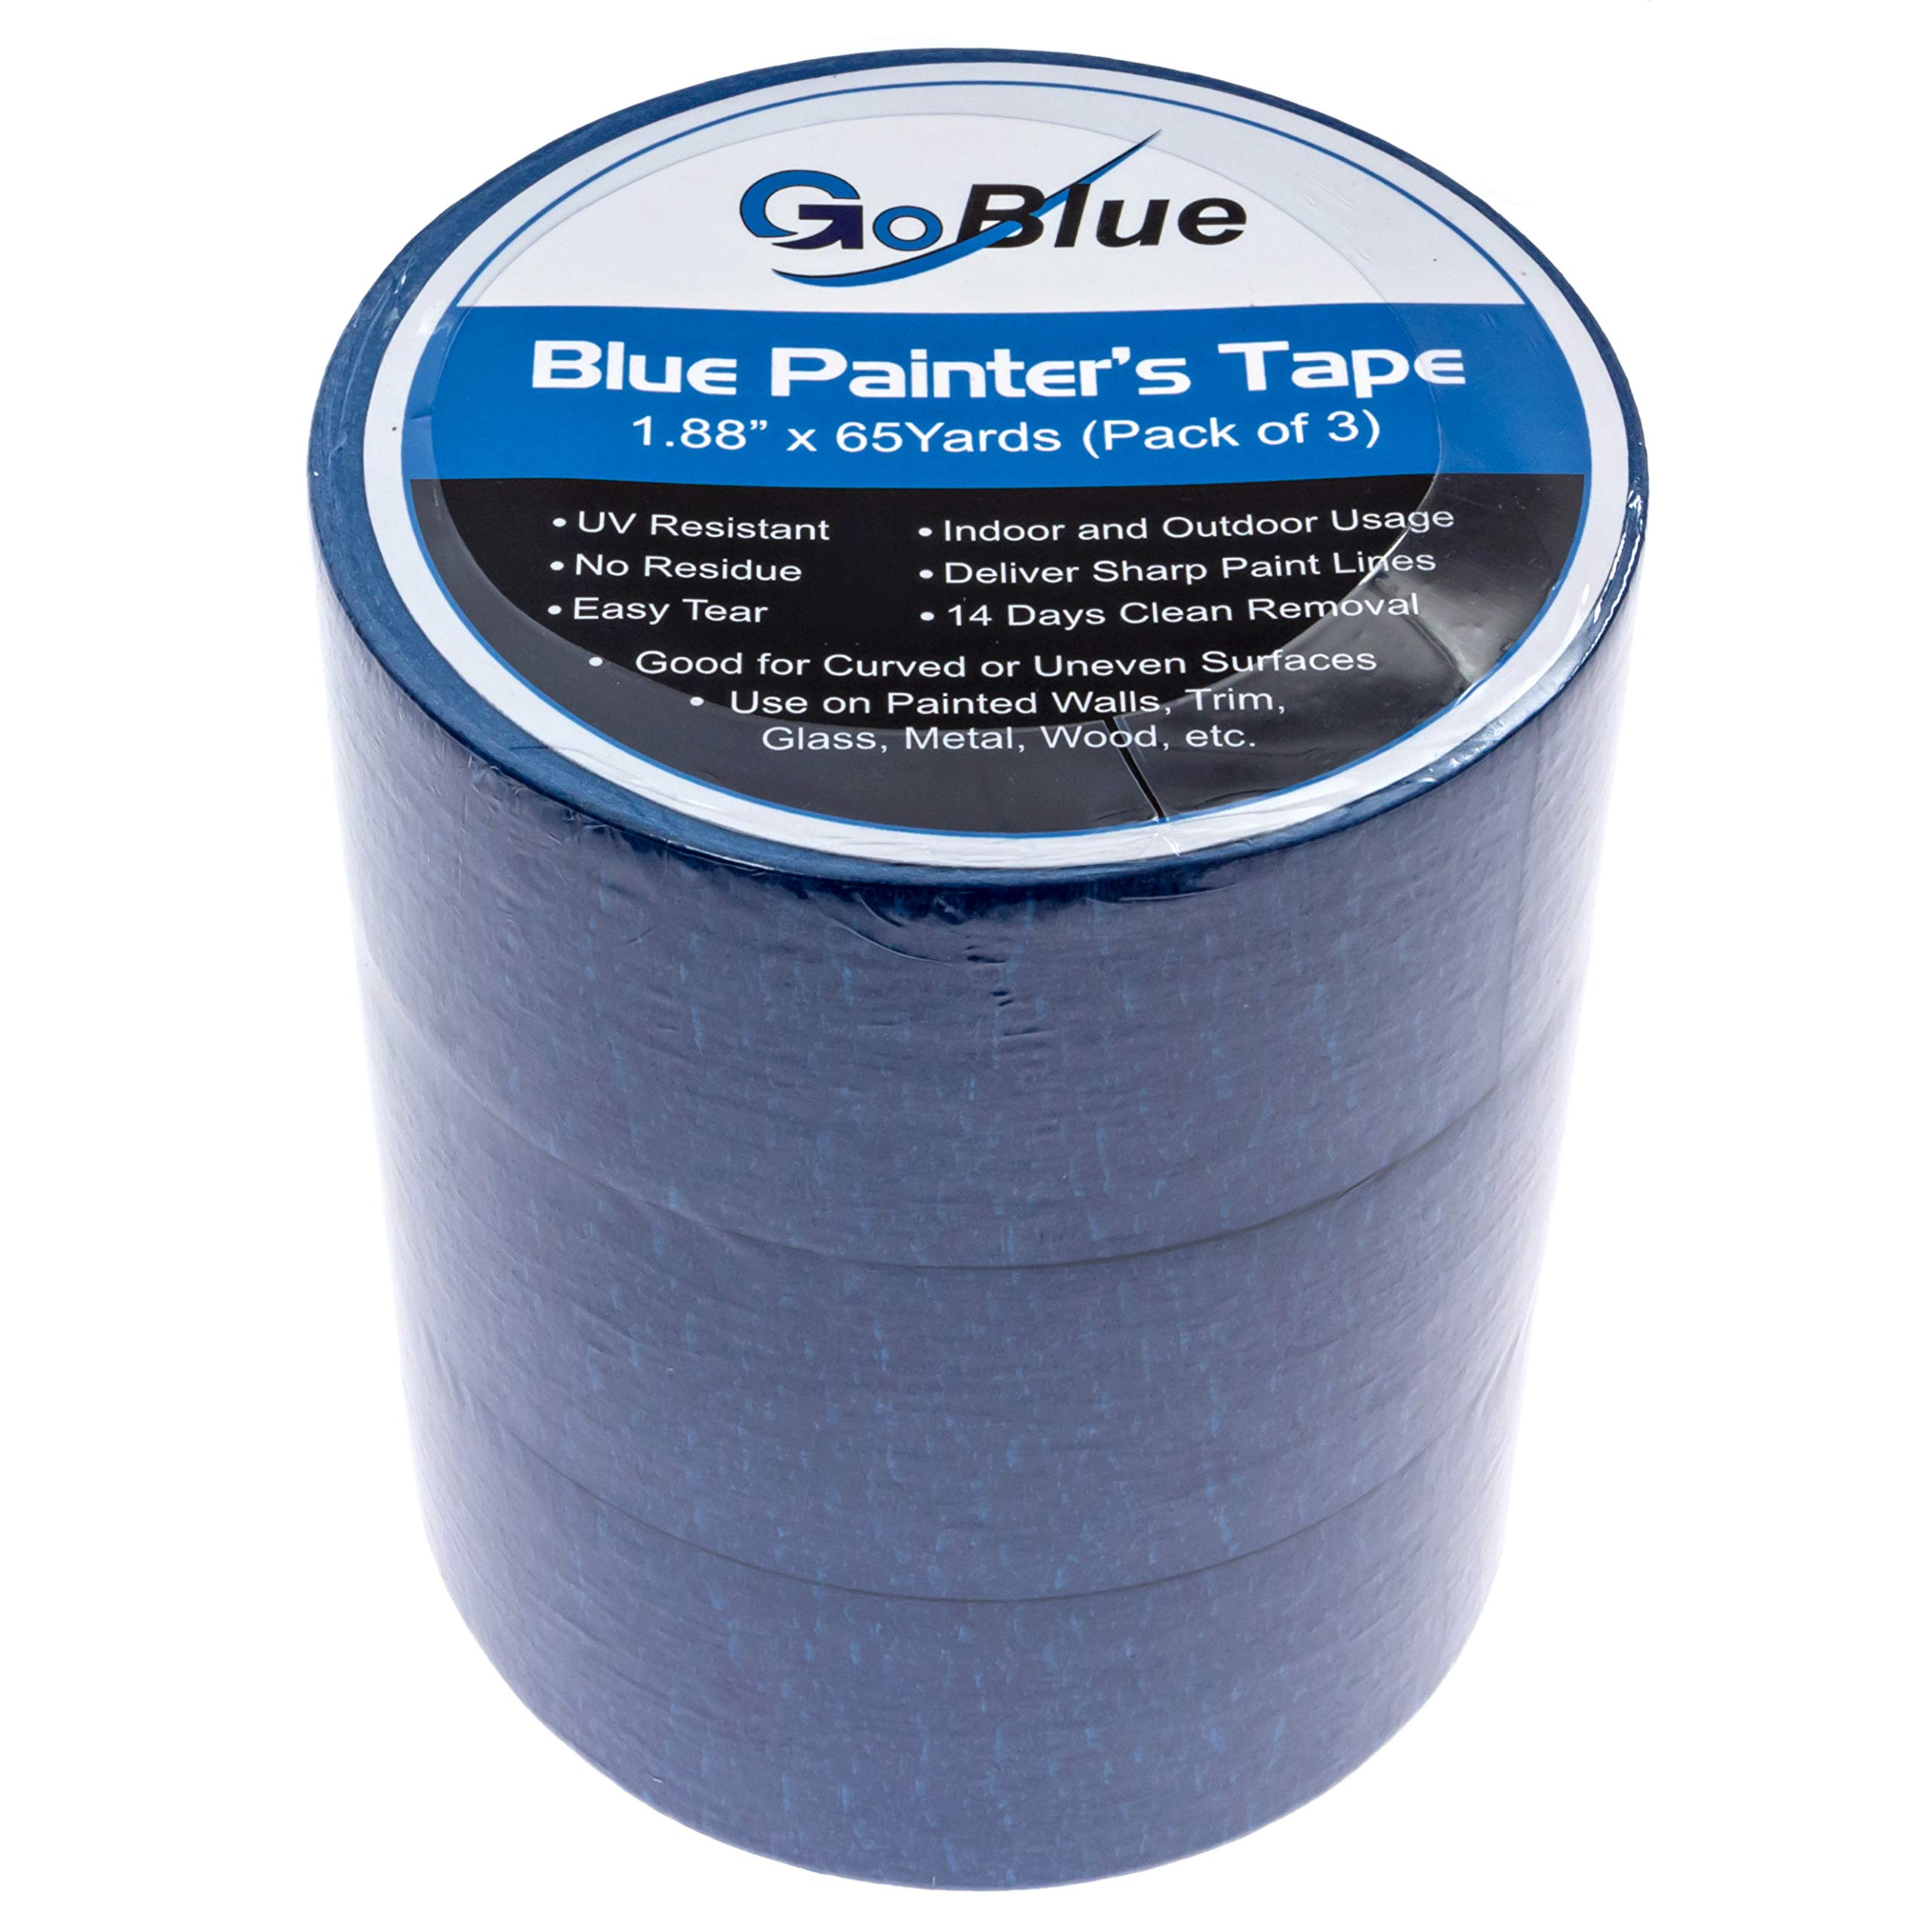 3 x Blue Painters Tape (65 Yard) by GoBlue - 1.88'' - Leaves Zero Adhesive Residue - for Any Surface - 2 Inch Colored Painter's Tape for Decorating & Painting Walls - Best Painter & Masking Paint Tape by GoBlue